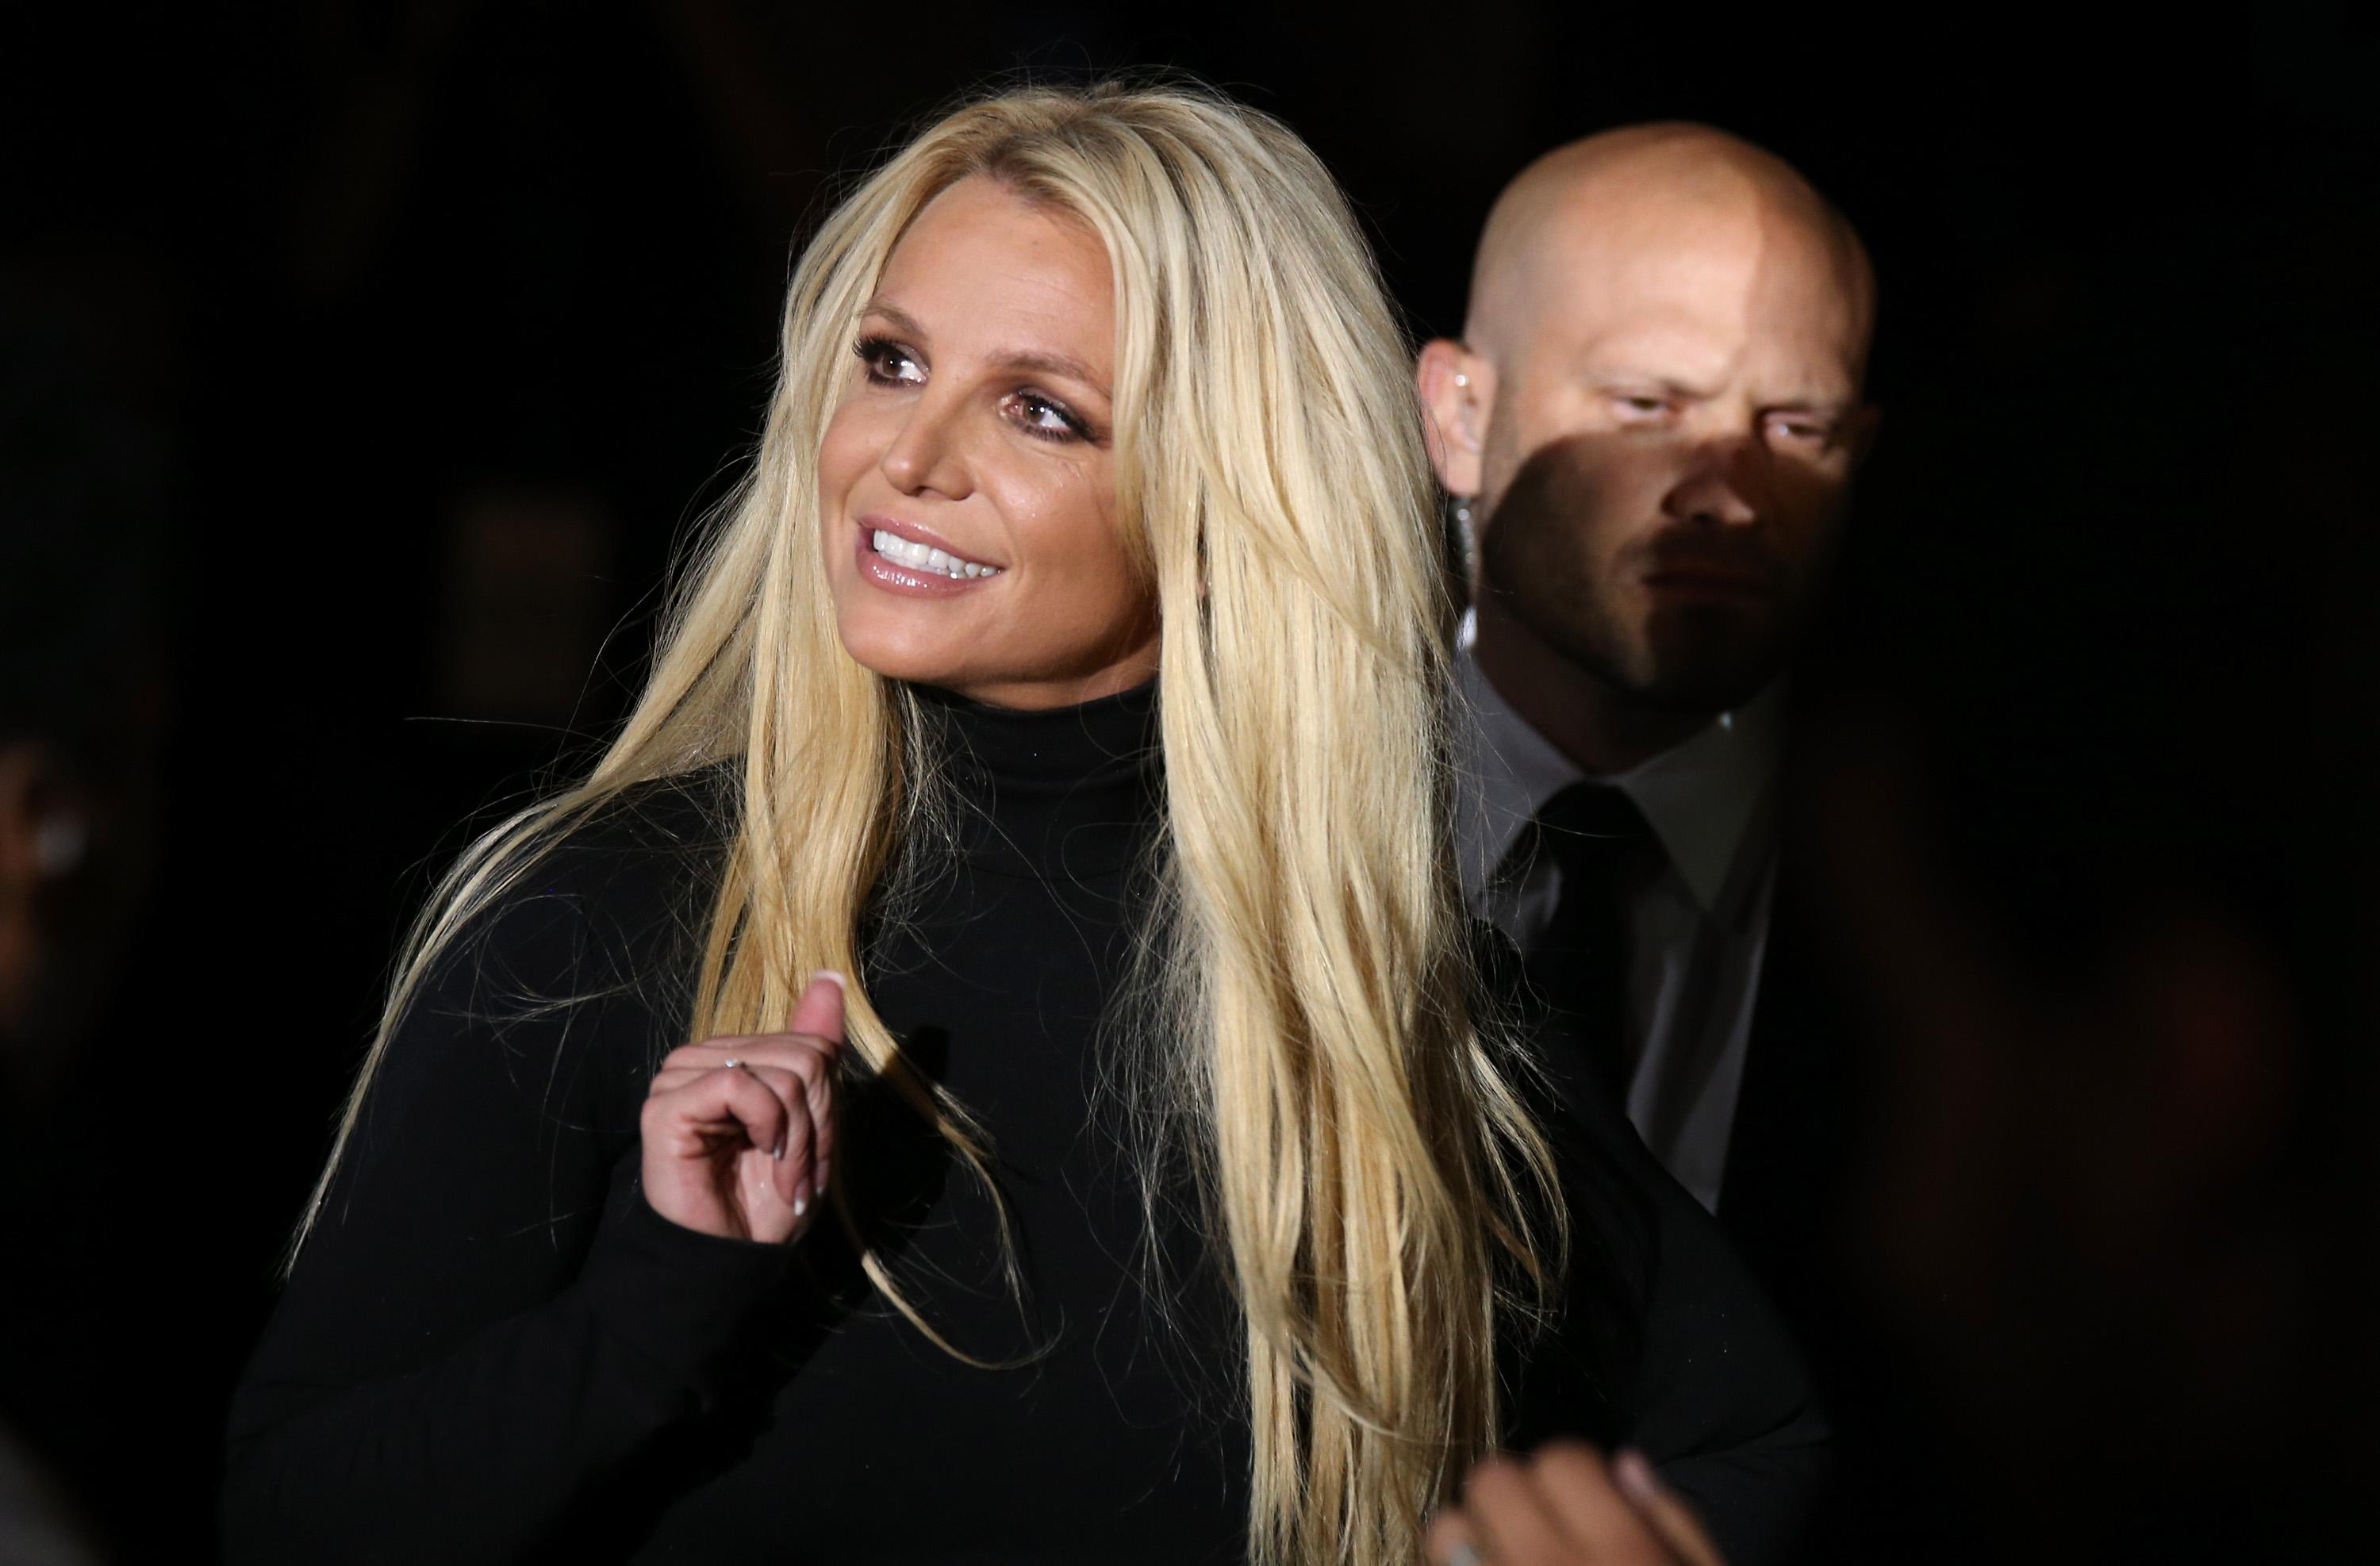 Britney Spears's social media posts have fans concerned: 'Her videos are scaring me'